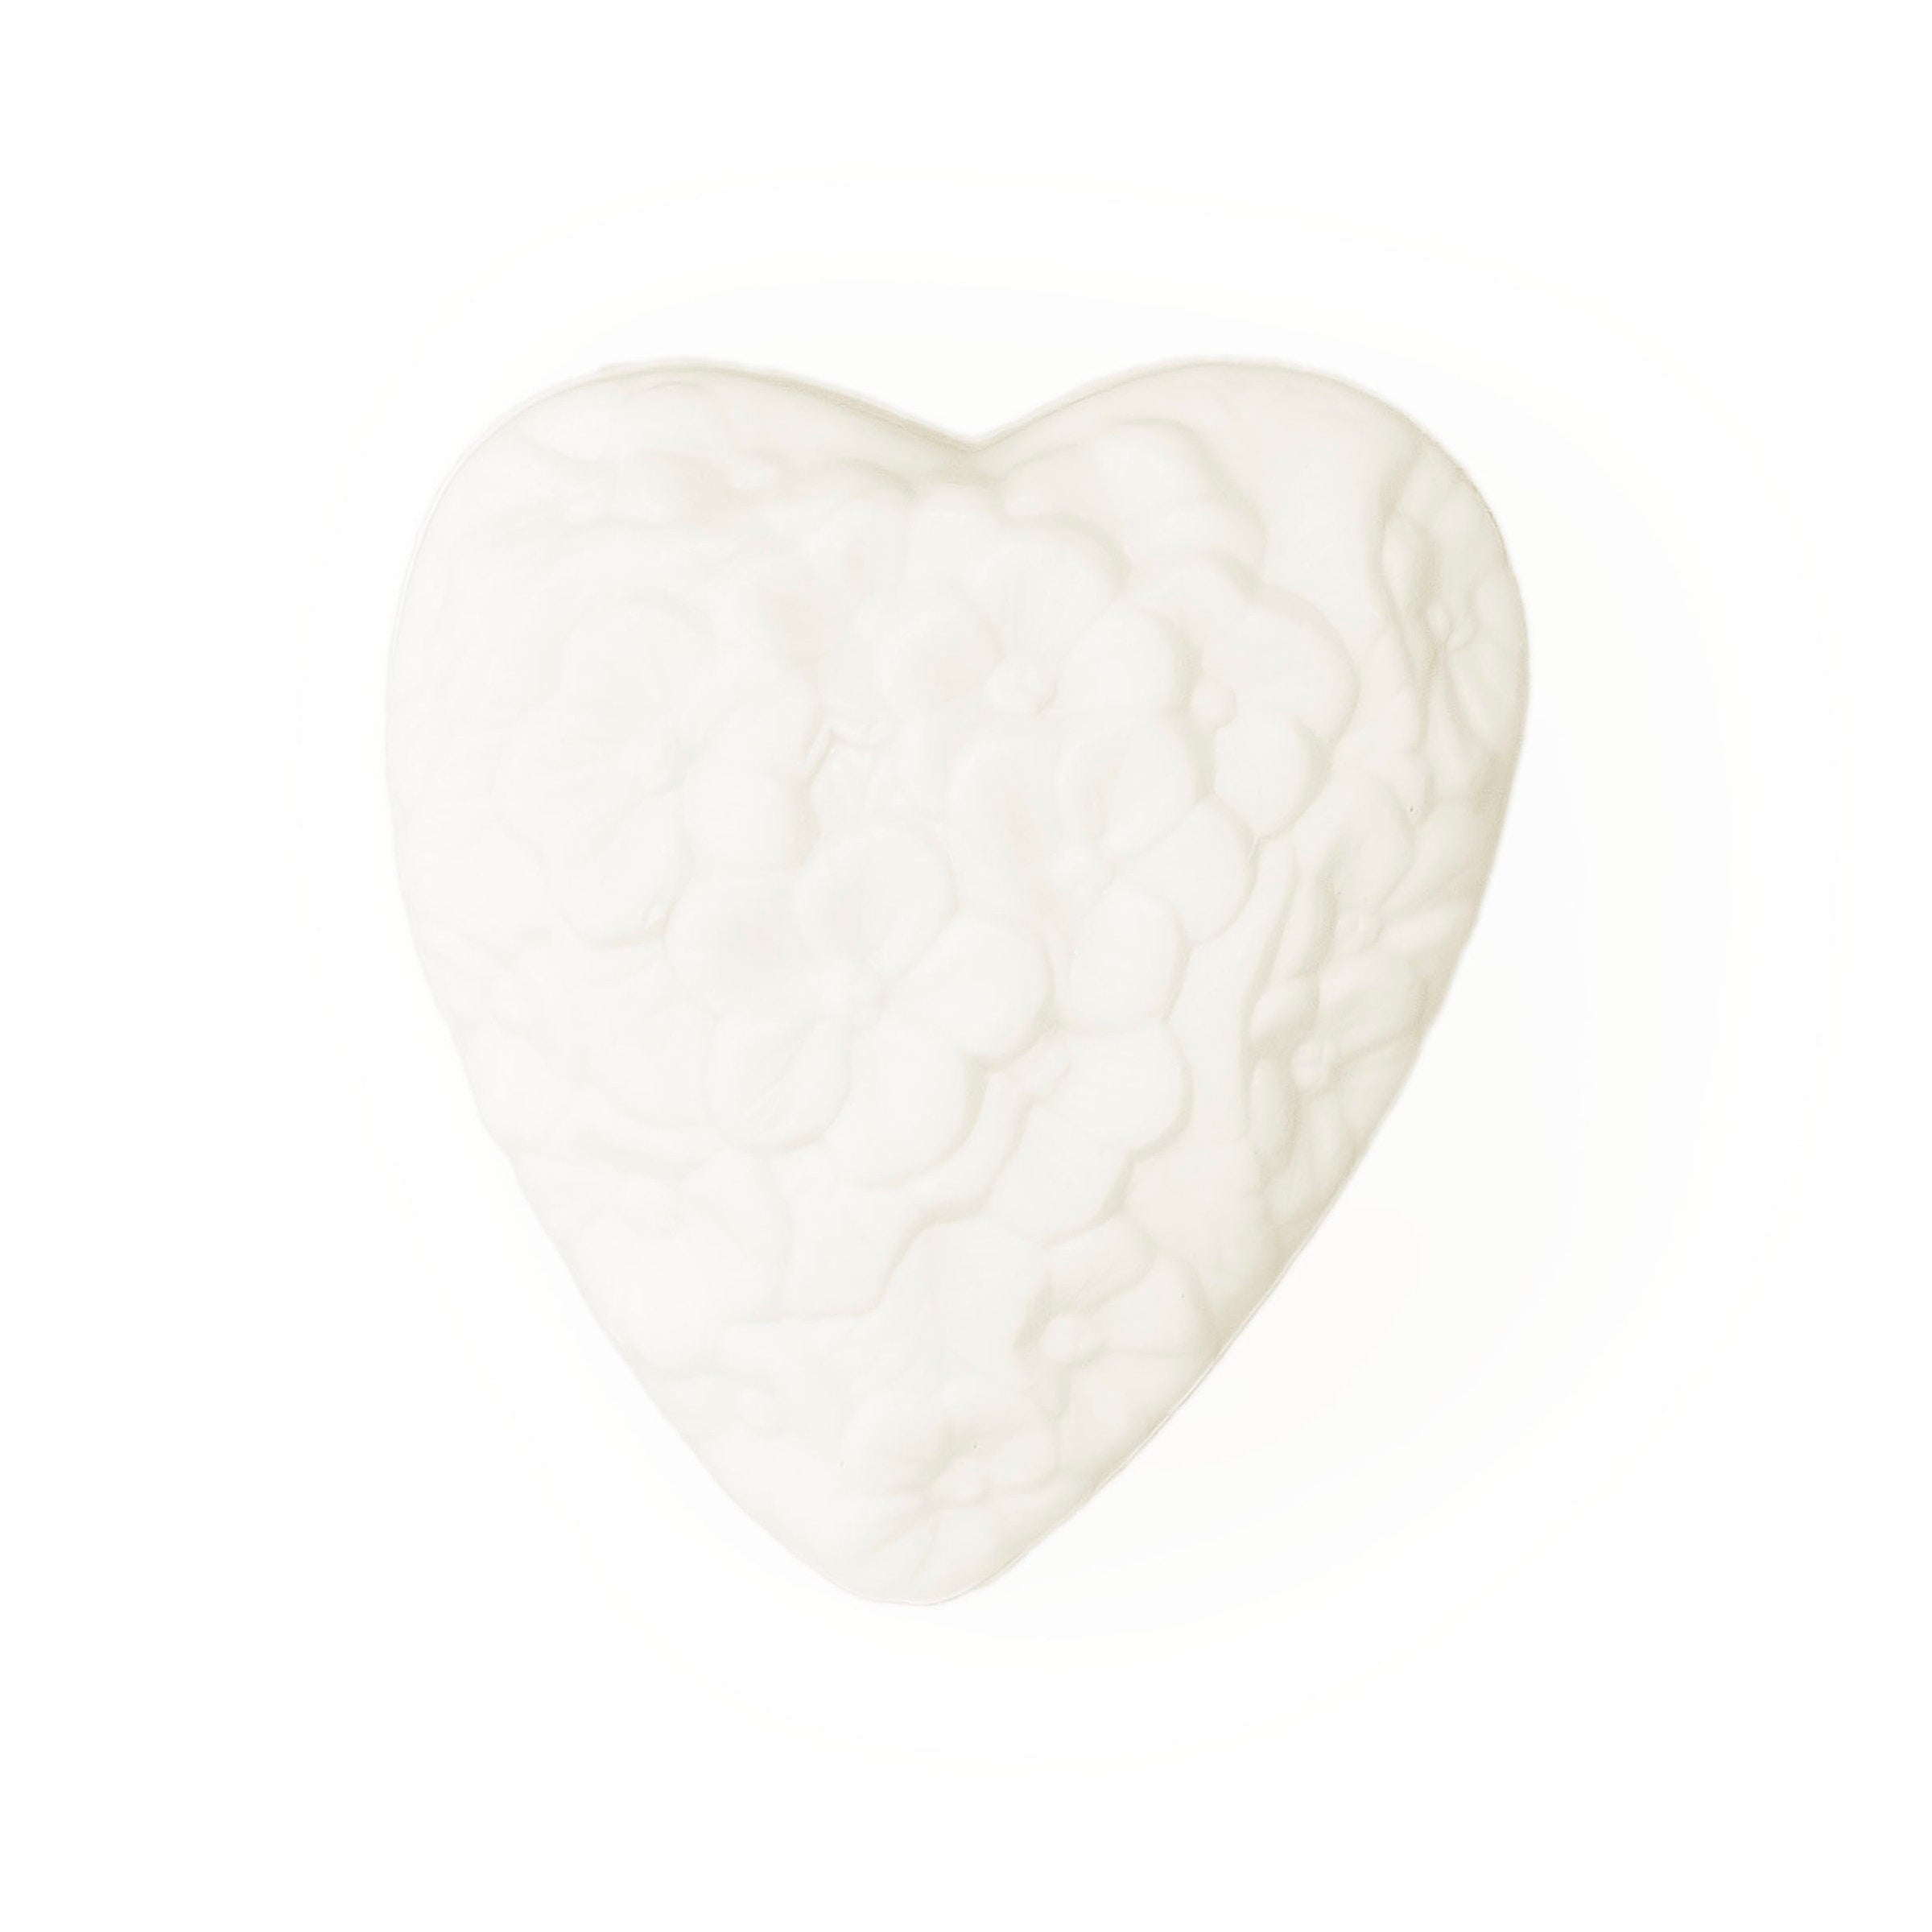 Gianna Rose Heart Soap - Classic Gold